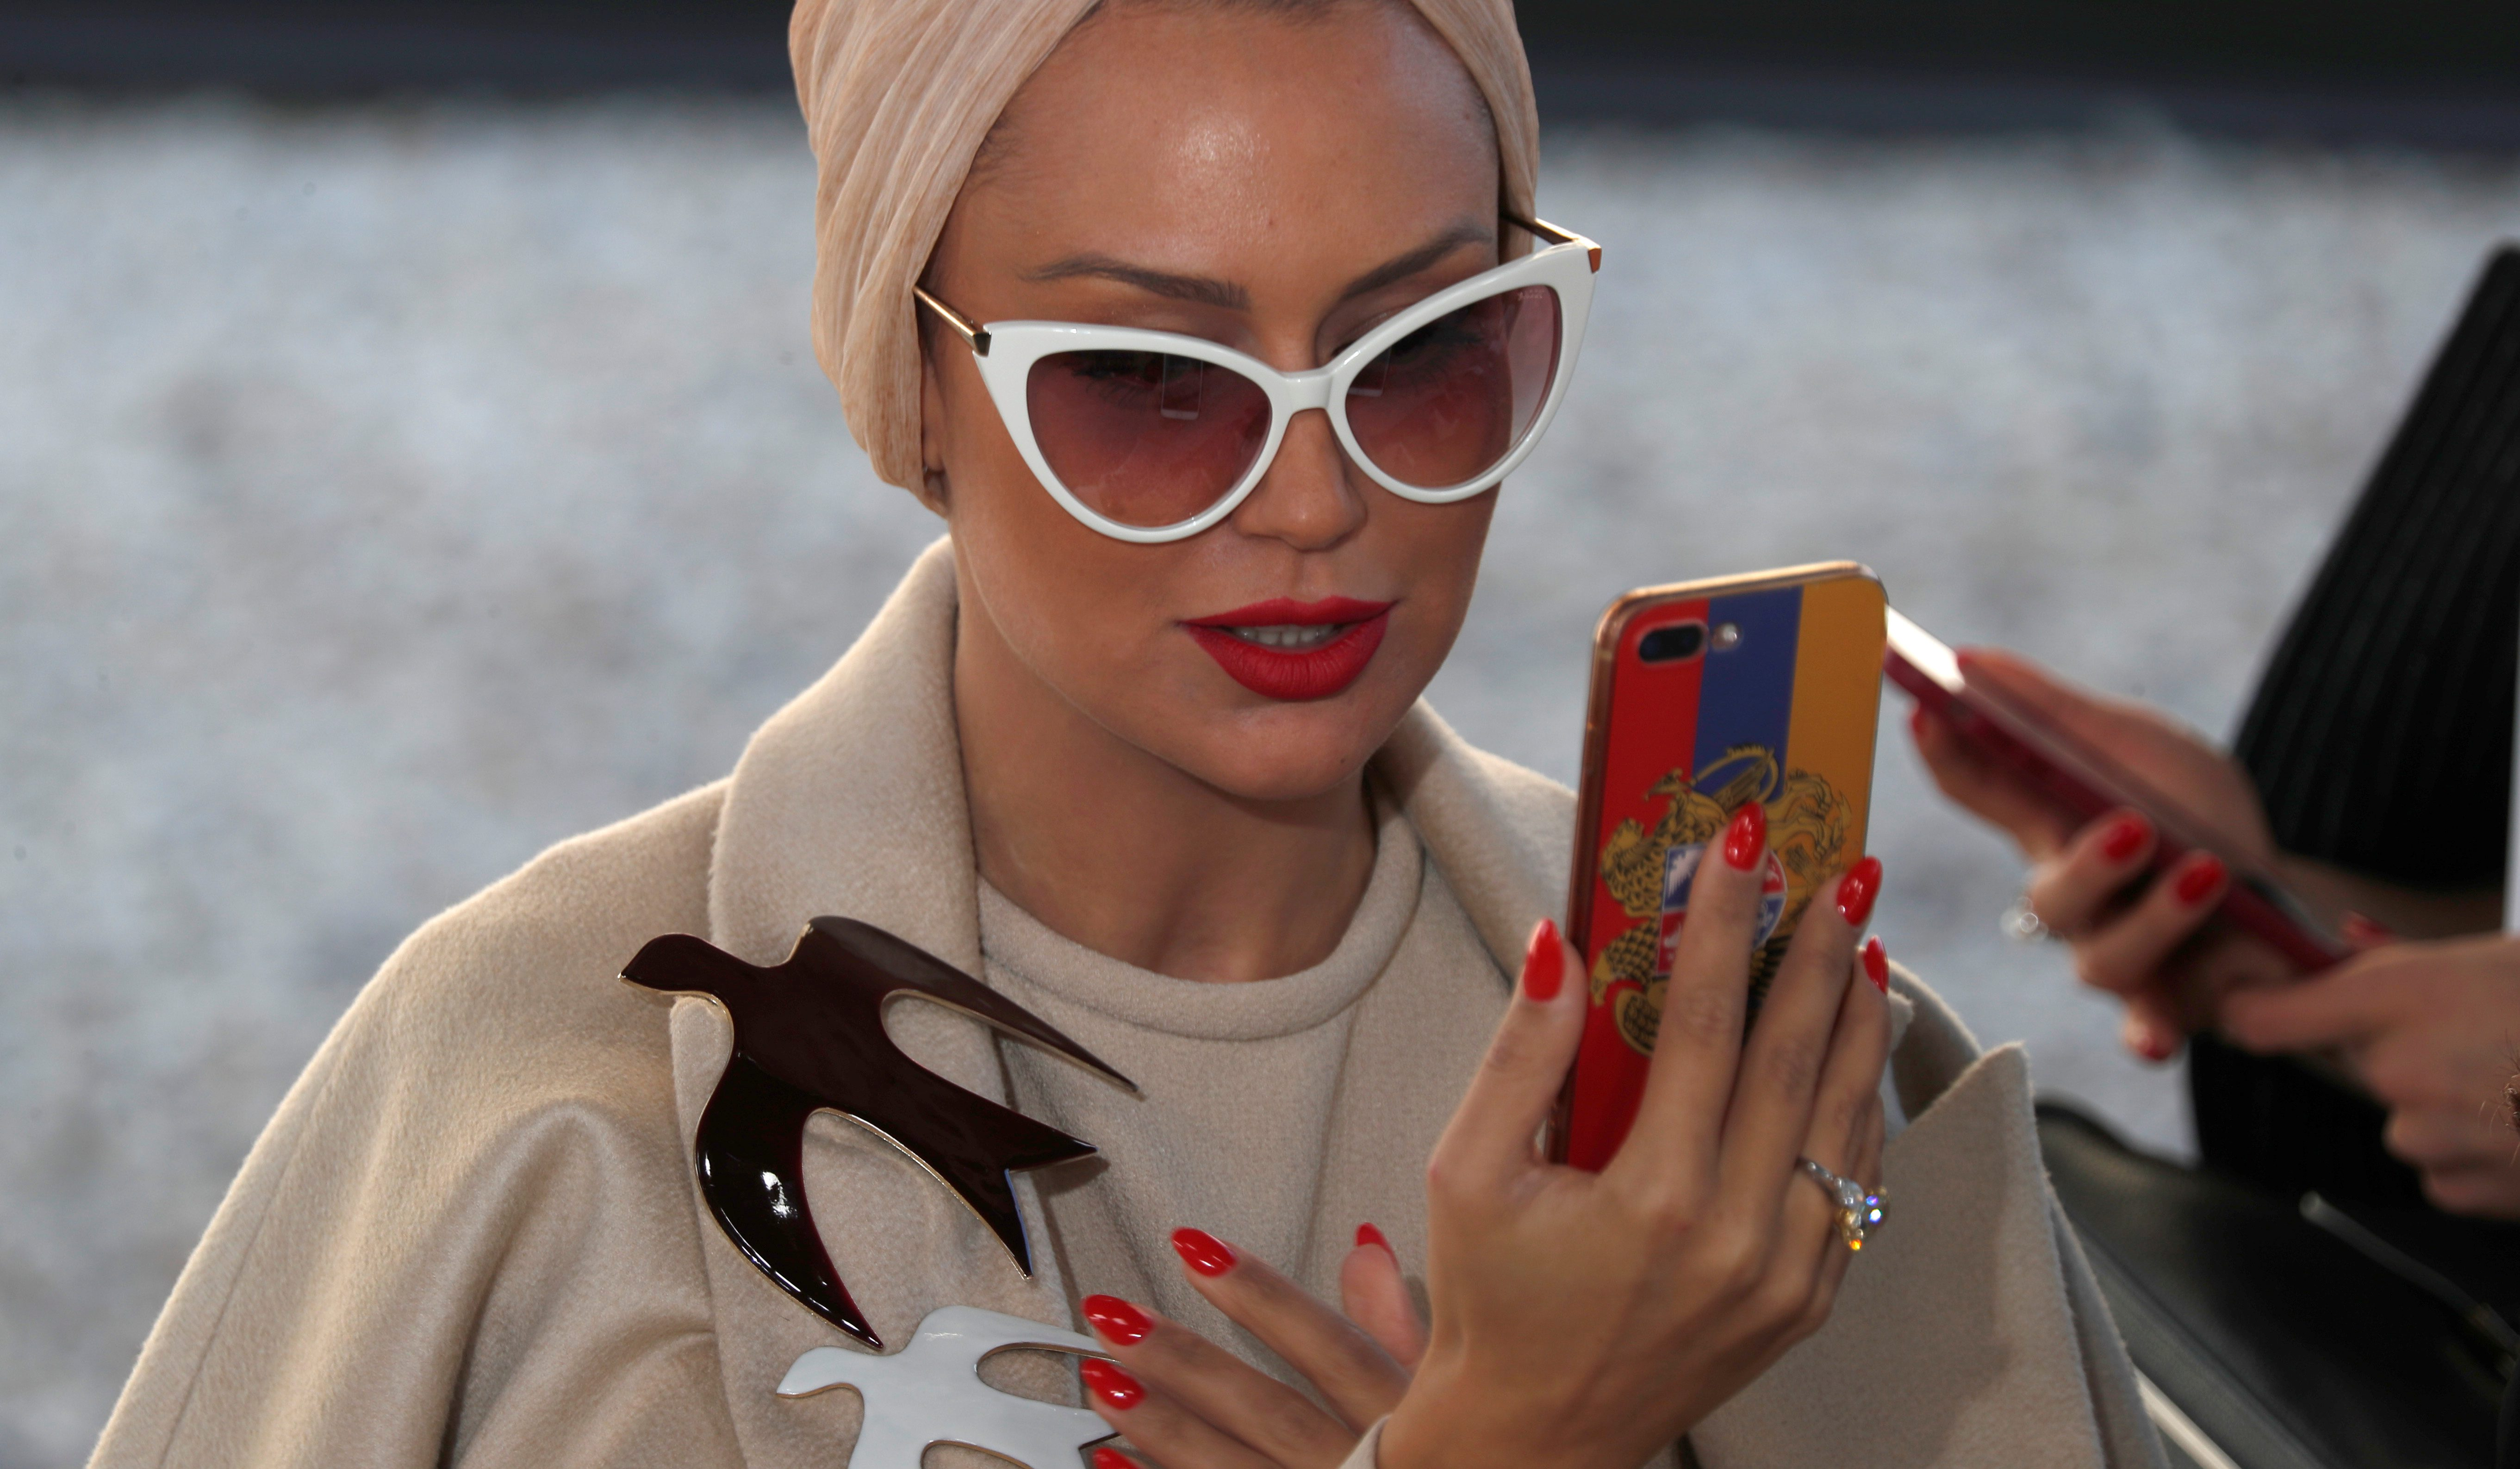 A guest on a mobile phone during Spring/Summer 2018 women's ready-to-wear collection show for fashion house Nina Ricci during Fashion Week in Paris, France, September 29, 2017. REUTERS/Charles Platiau - RC1ECFAA27F0